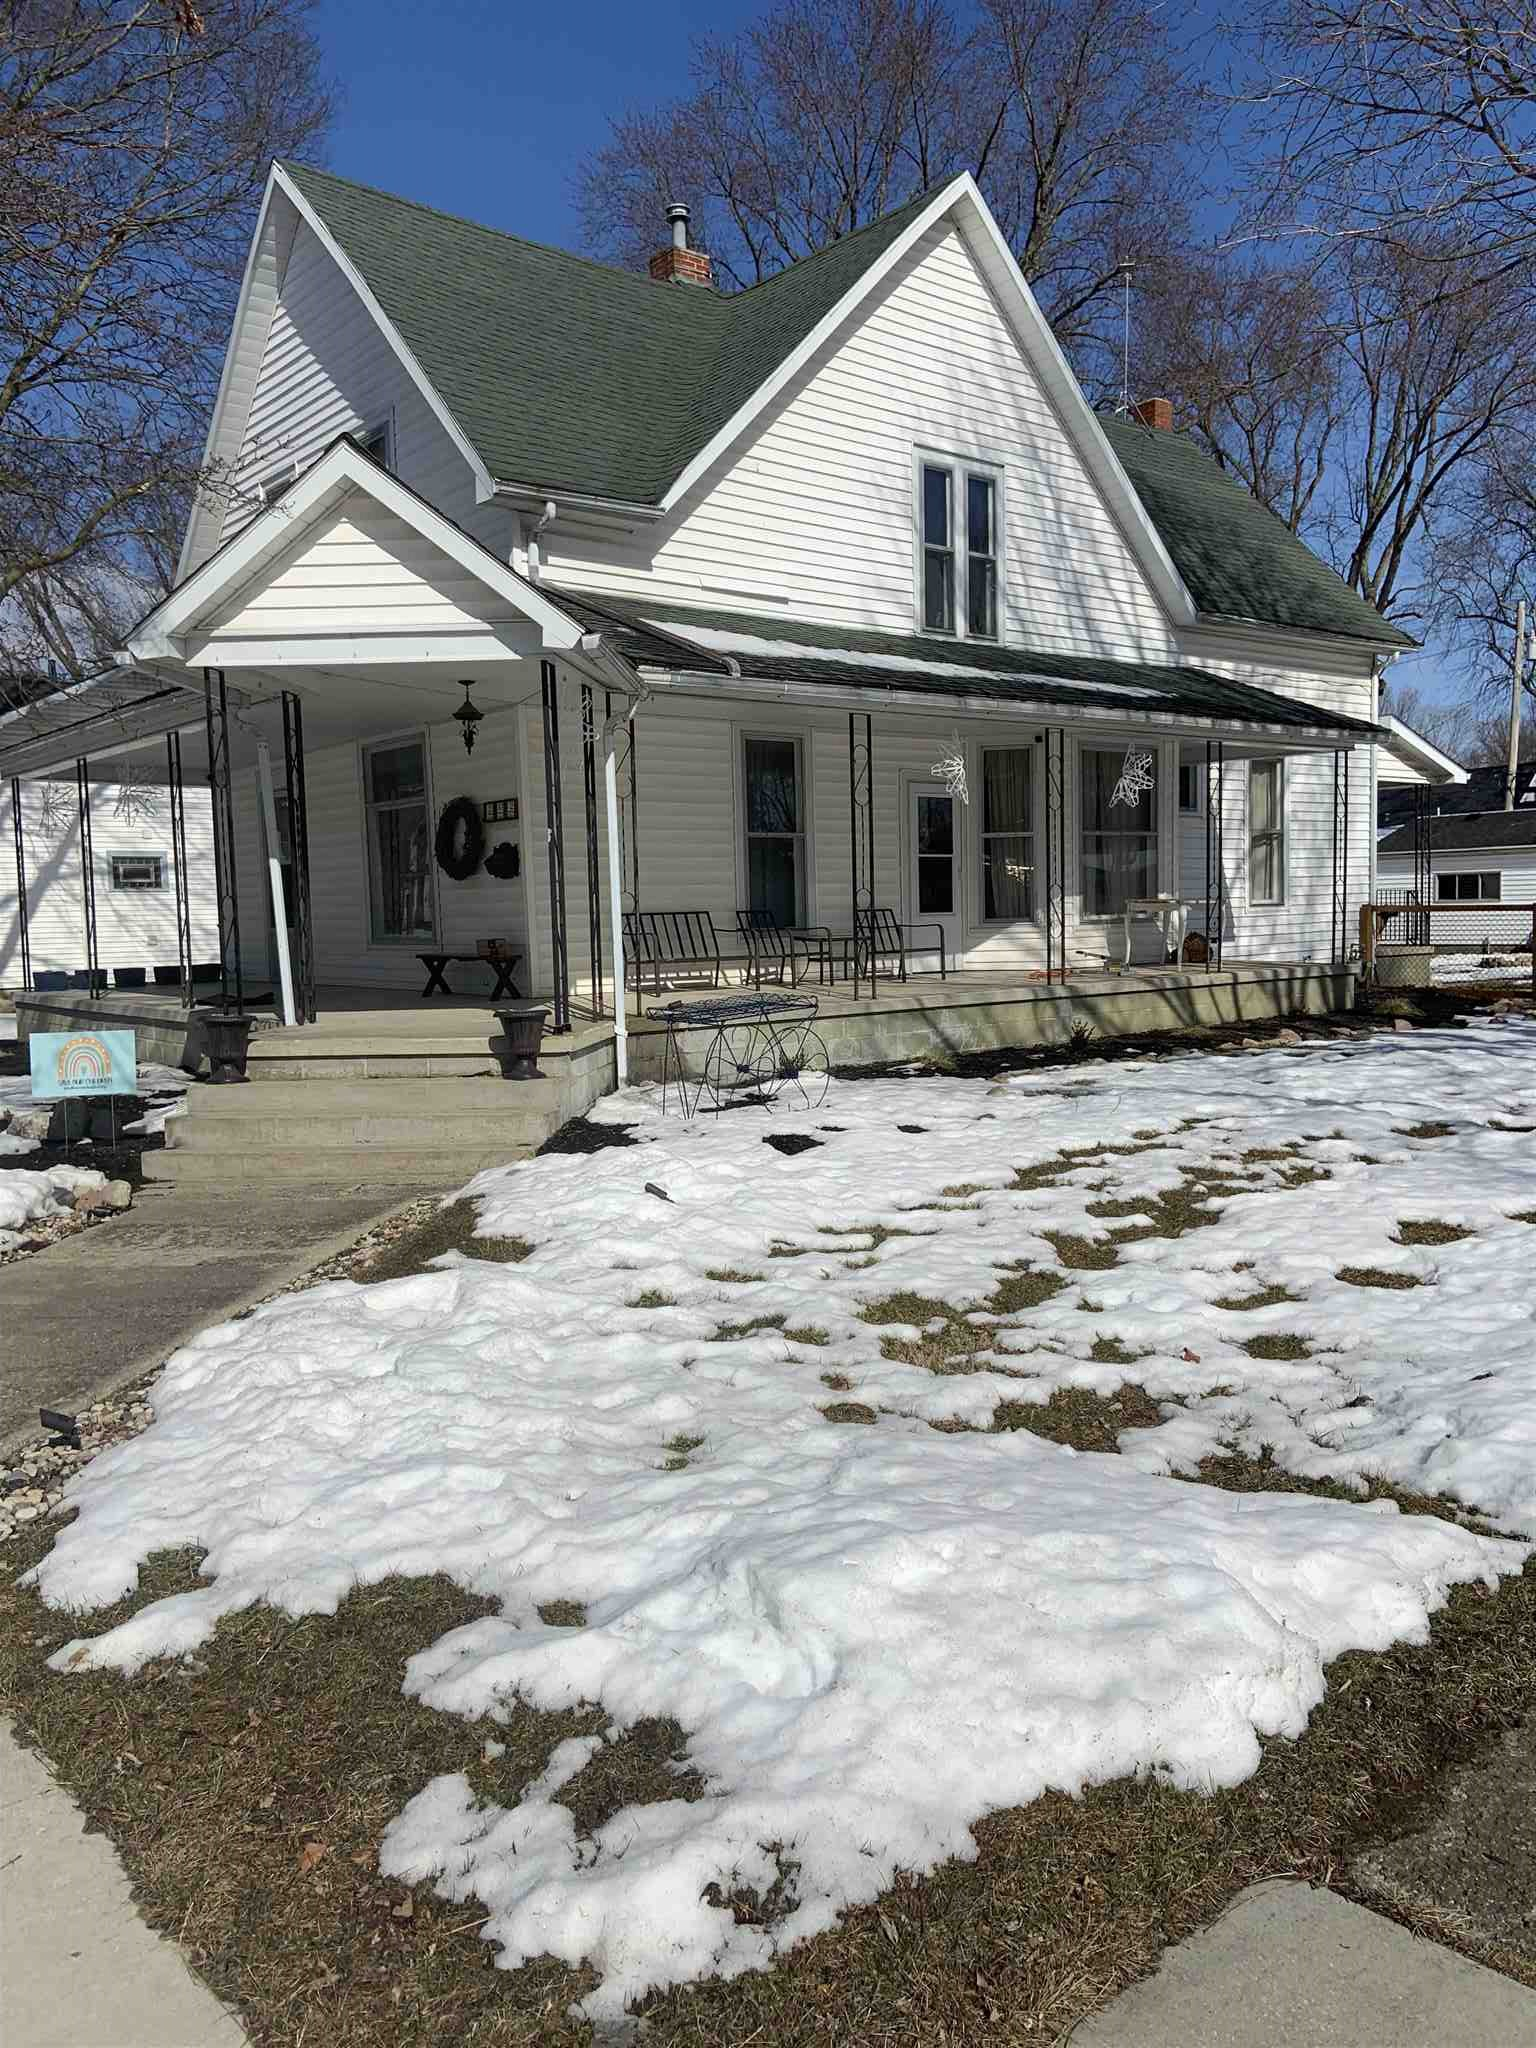 202 N Maple Street, South Whitley, IN 46787